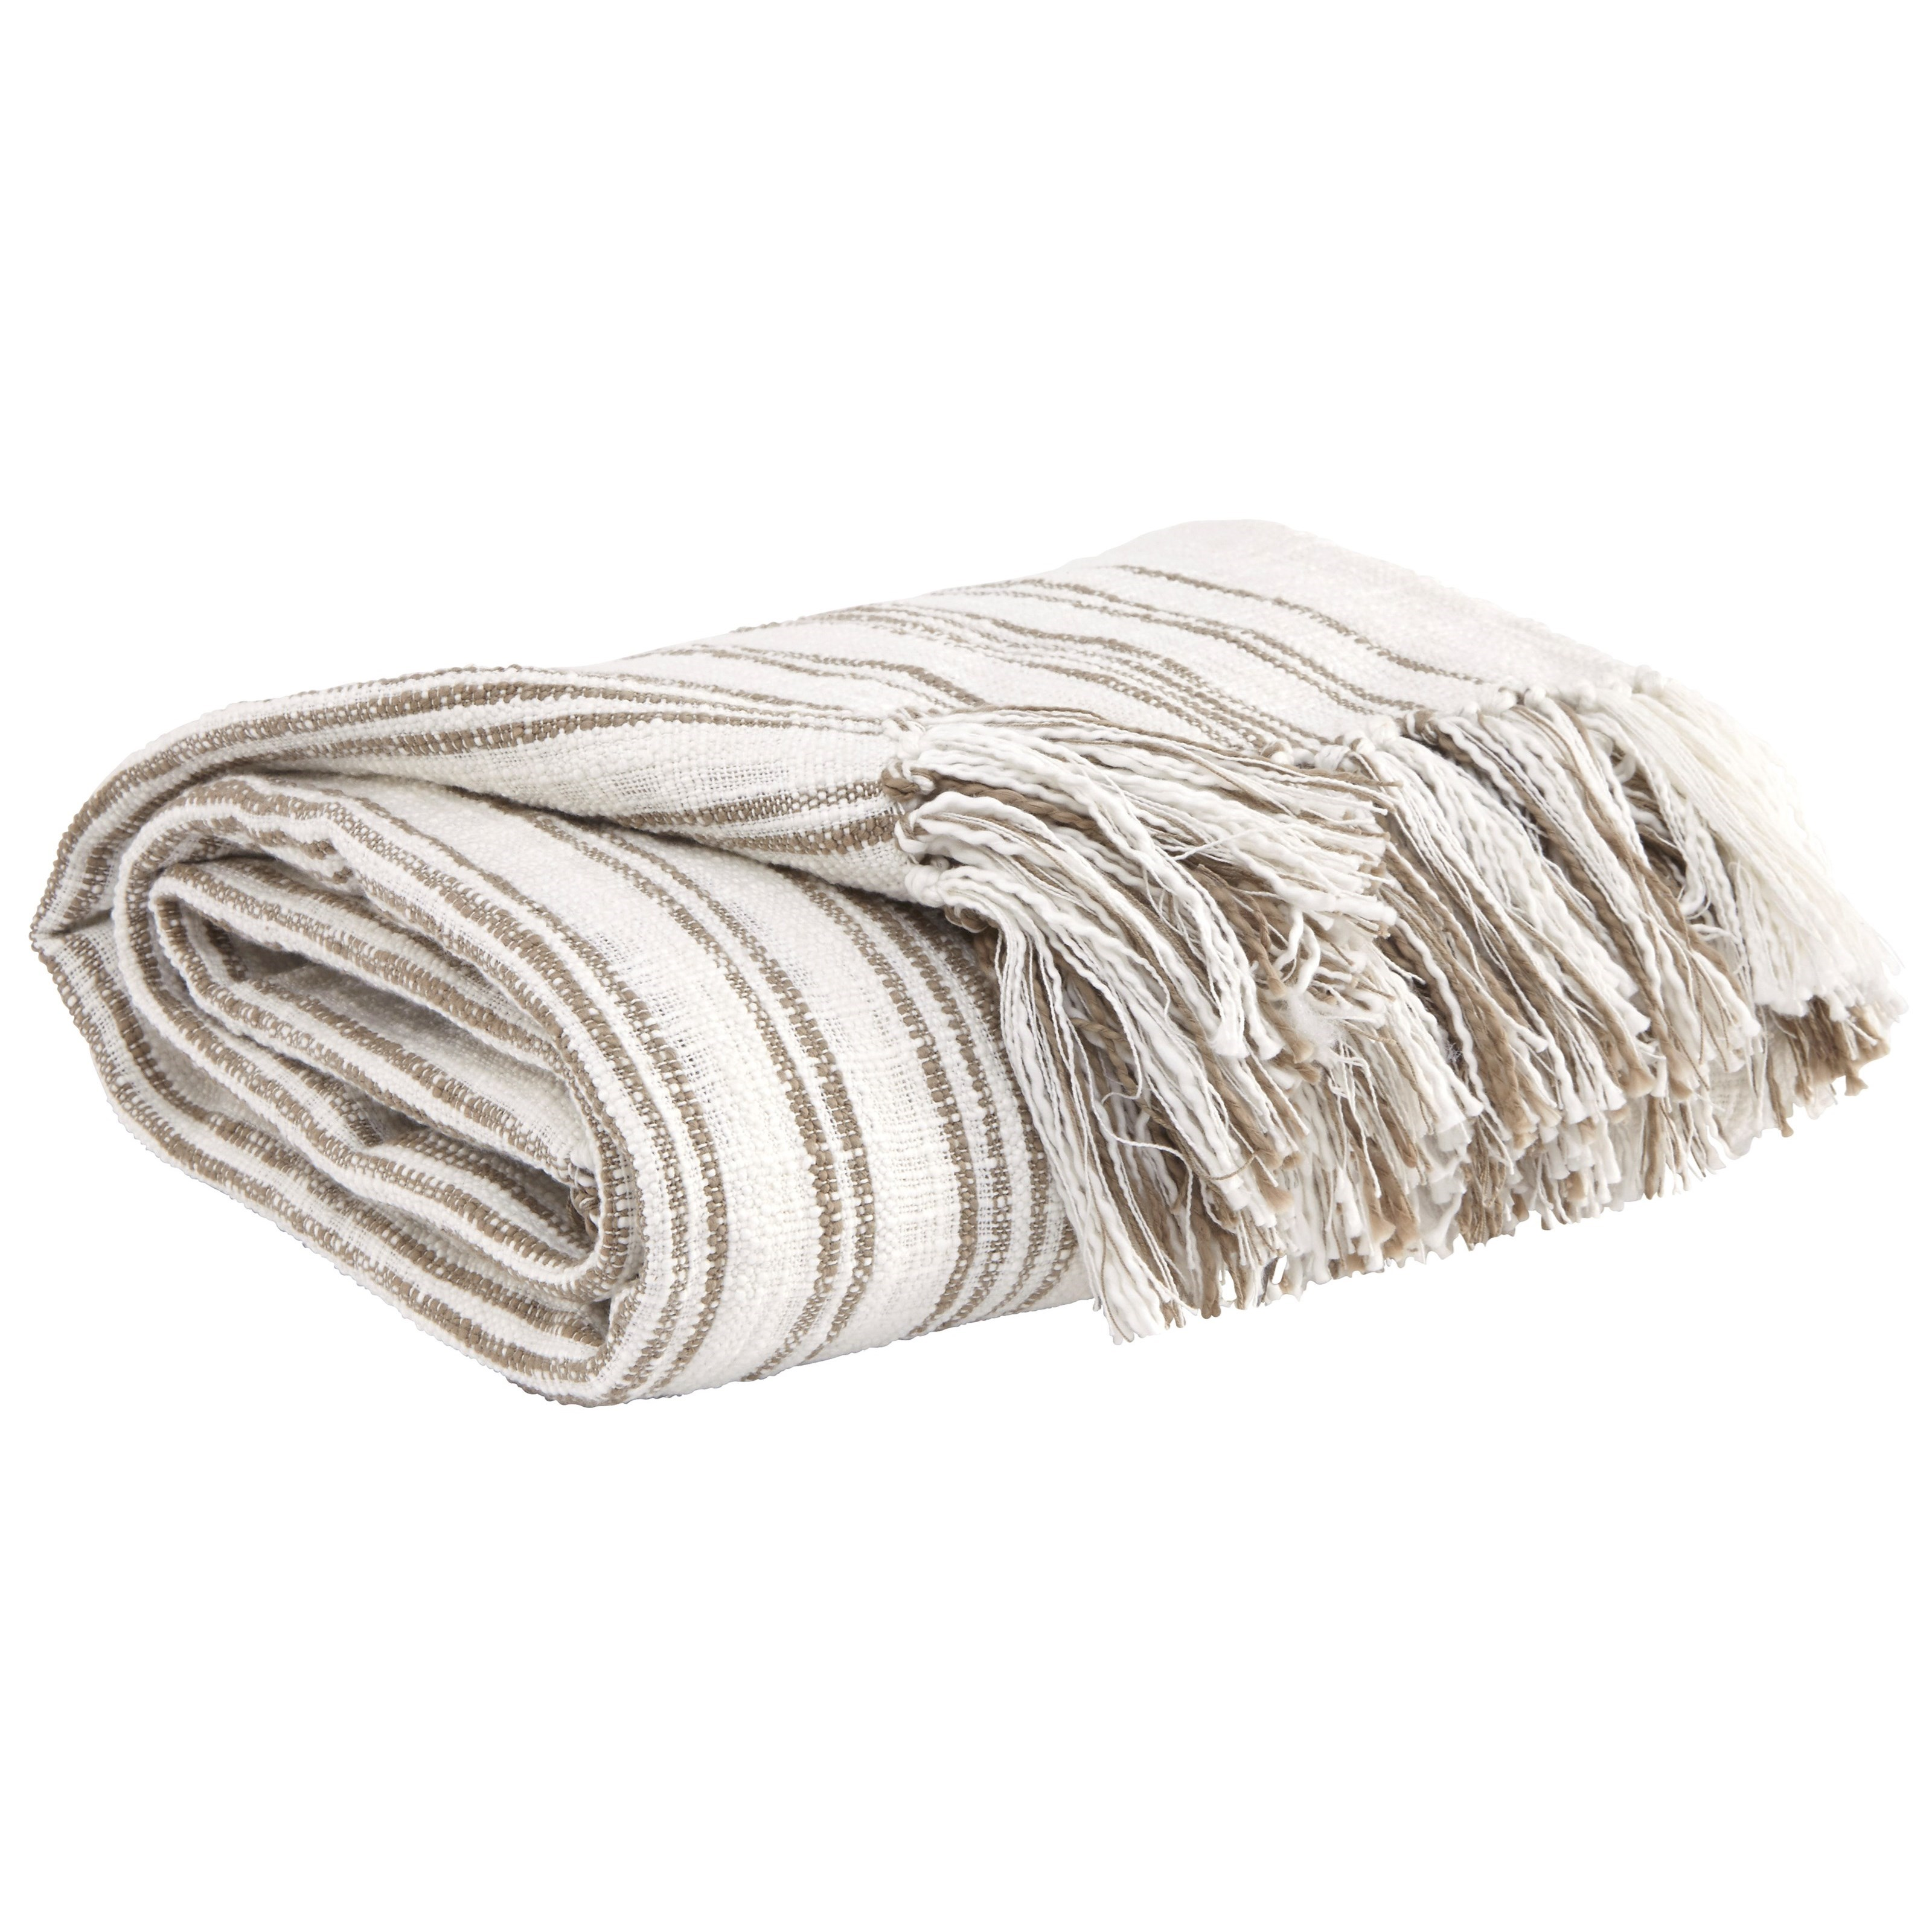 Signature Design by Ashley Throws Callumn - Beige Throw - Item Number: A1000629T